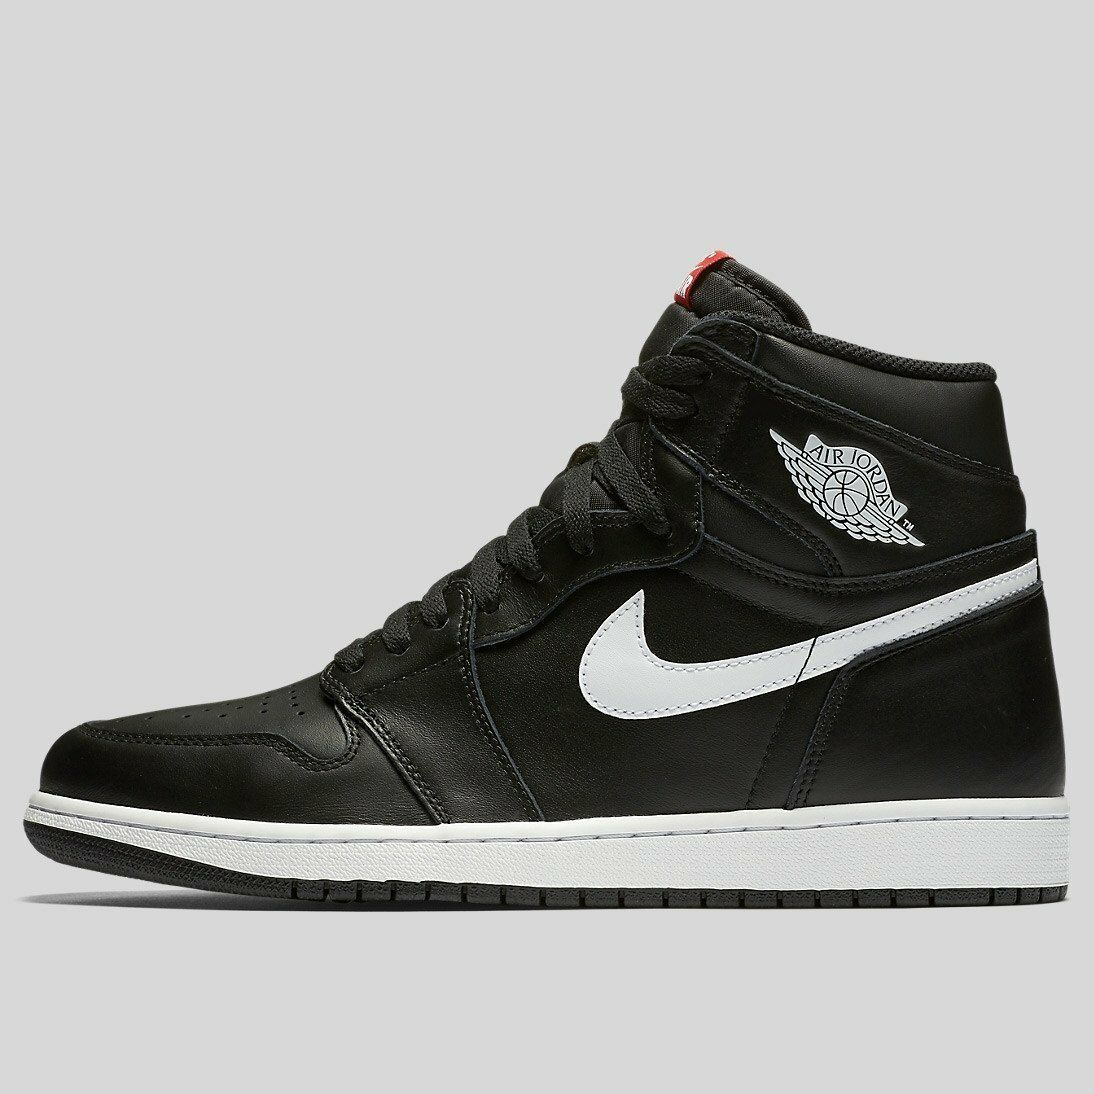 Nike Air Jordan 1 Retro High OG Black White Yin Yang Size 12. 555088-011